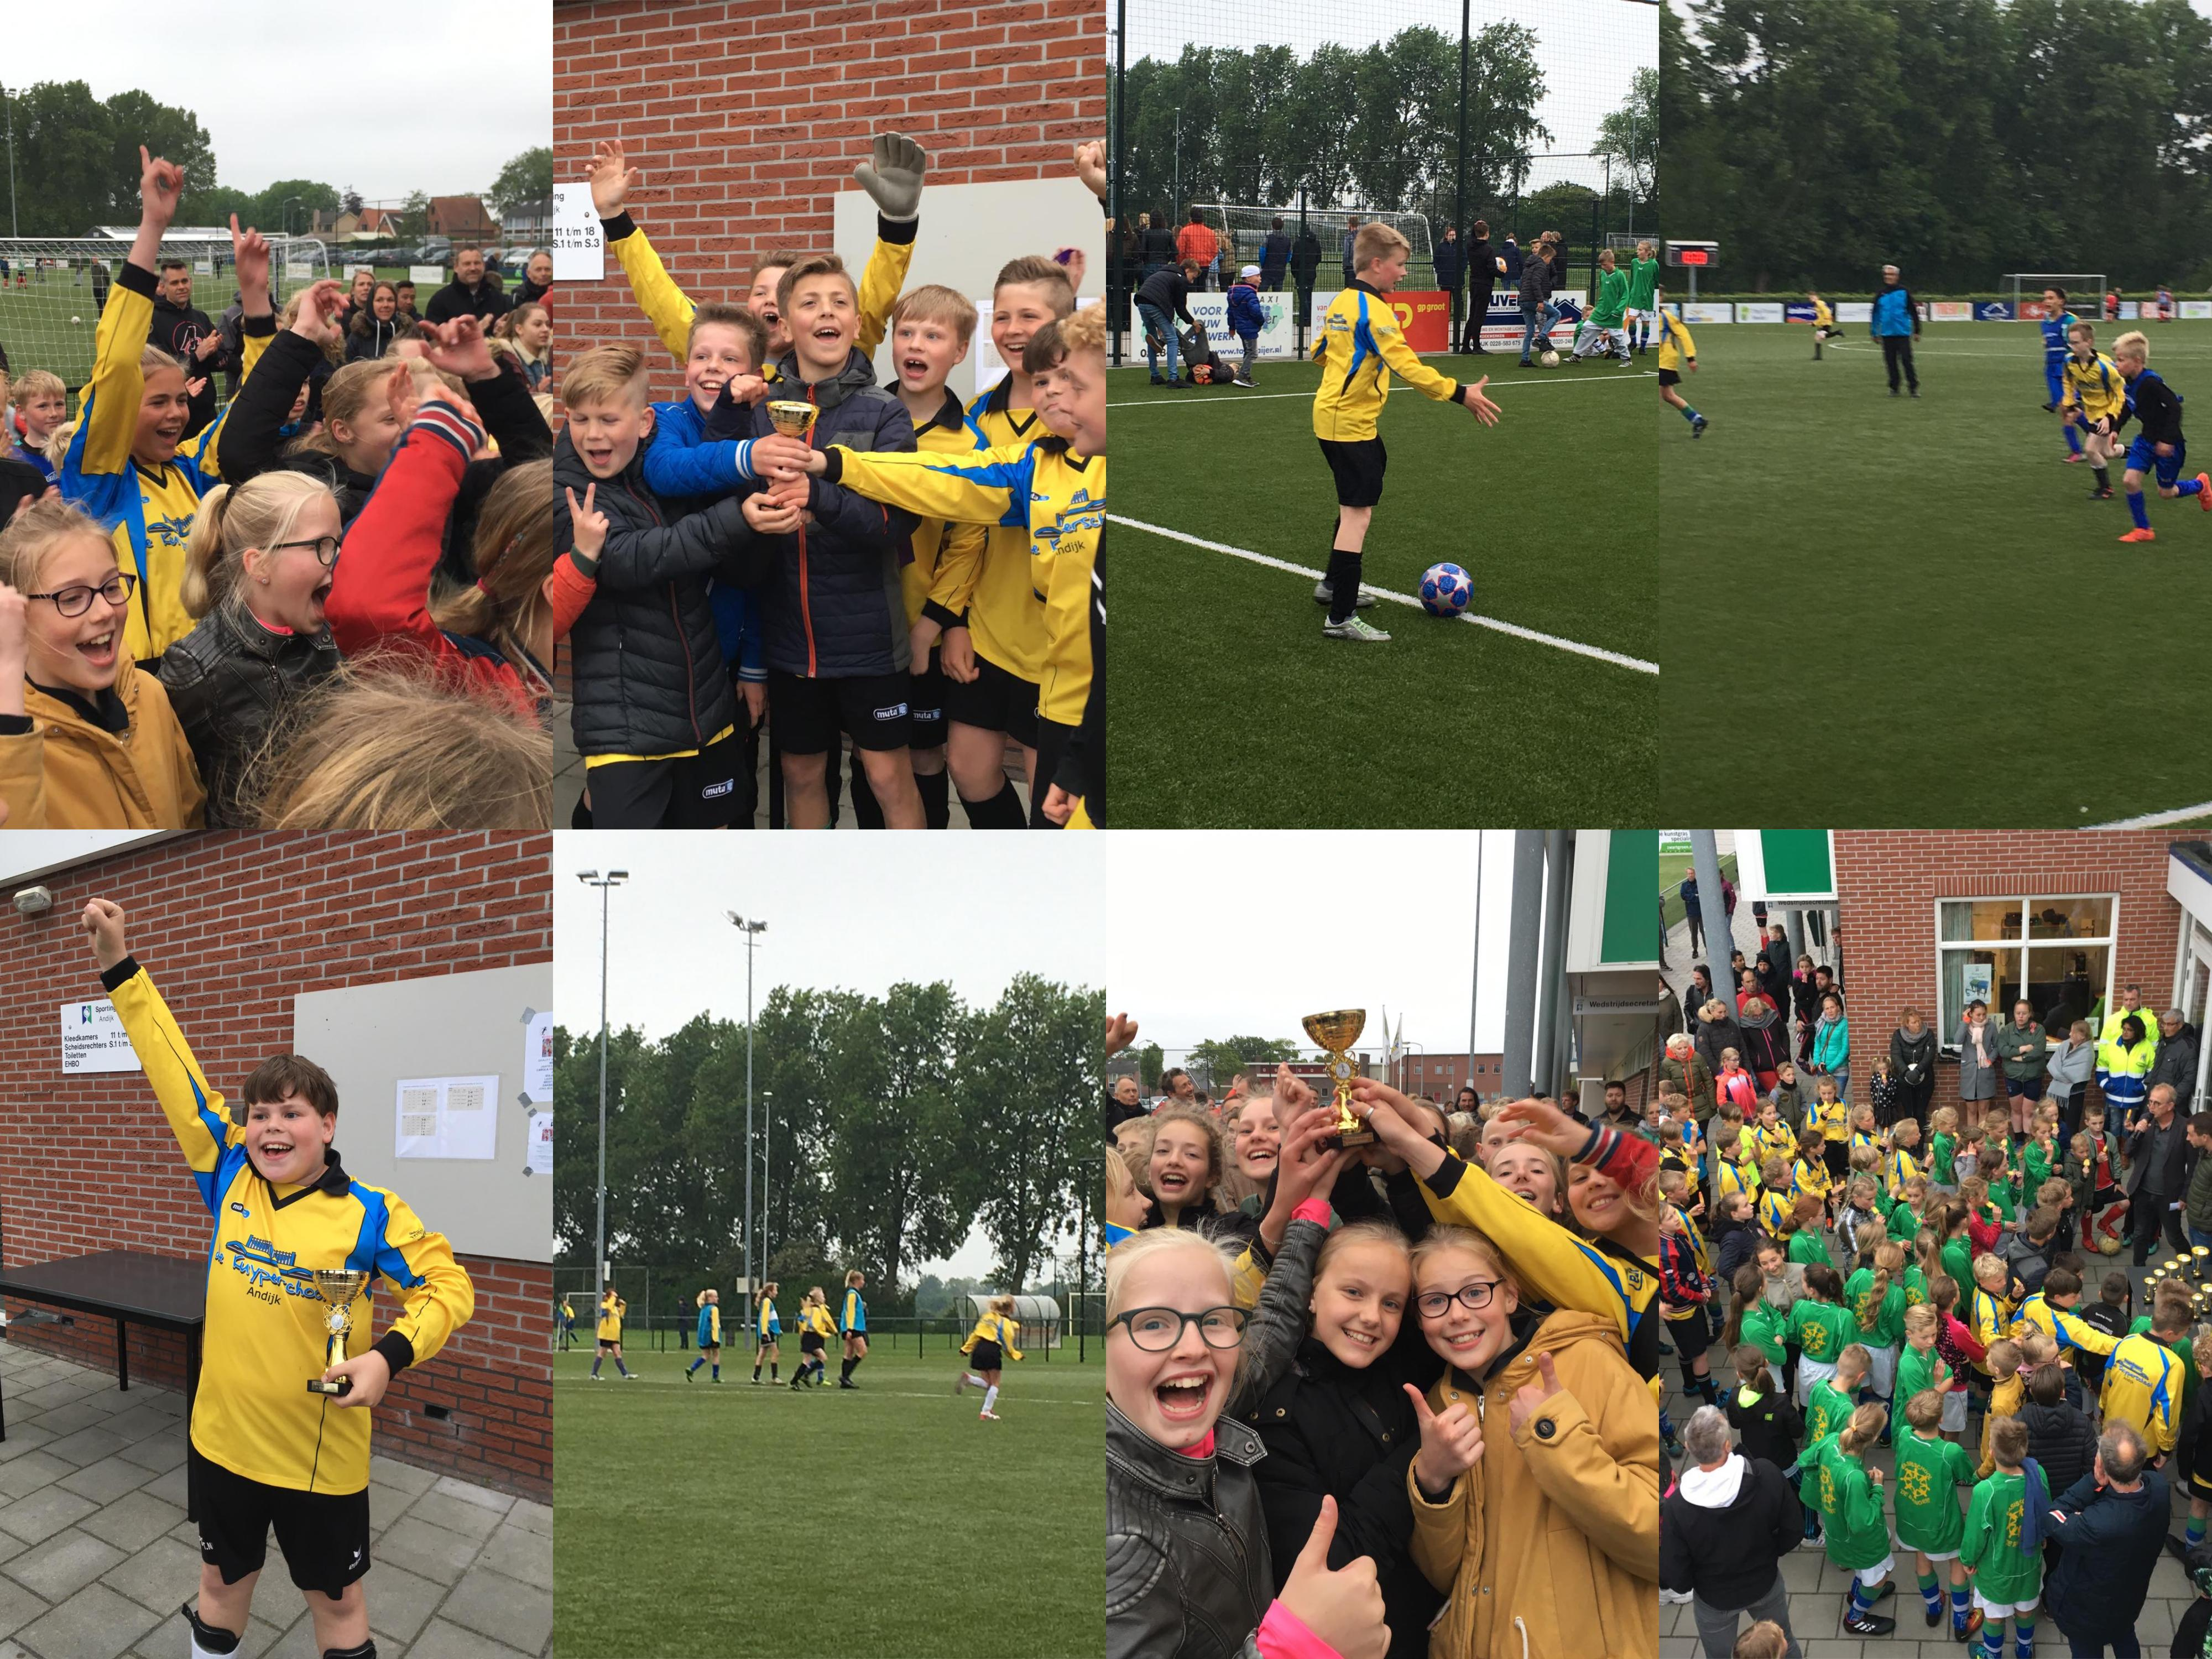 collageschoolvoetbal